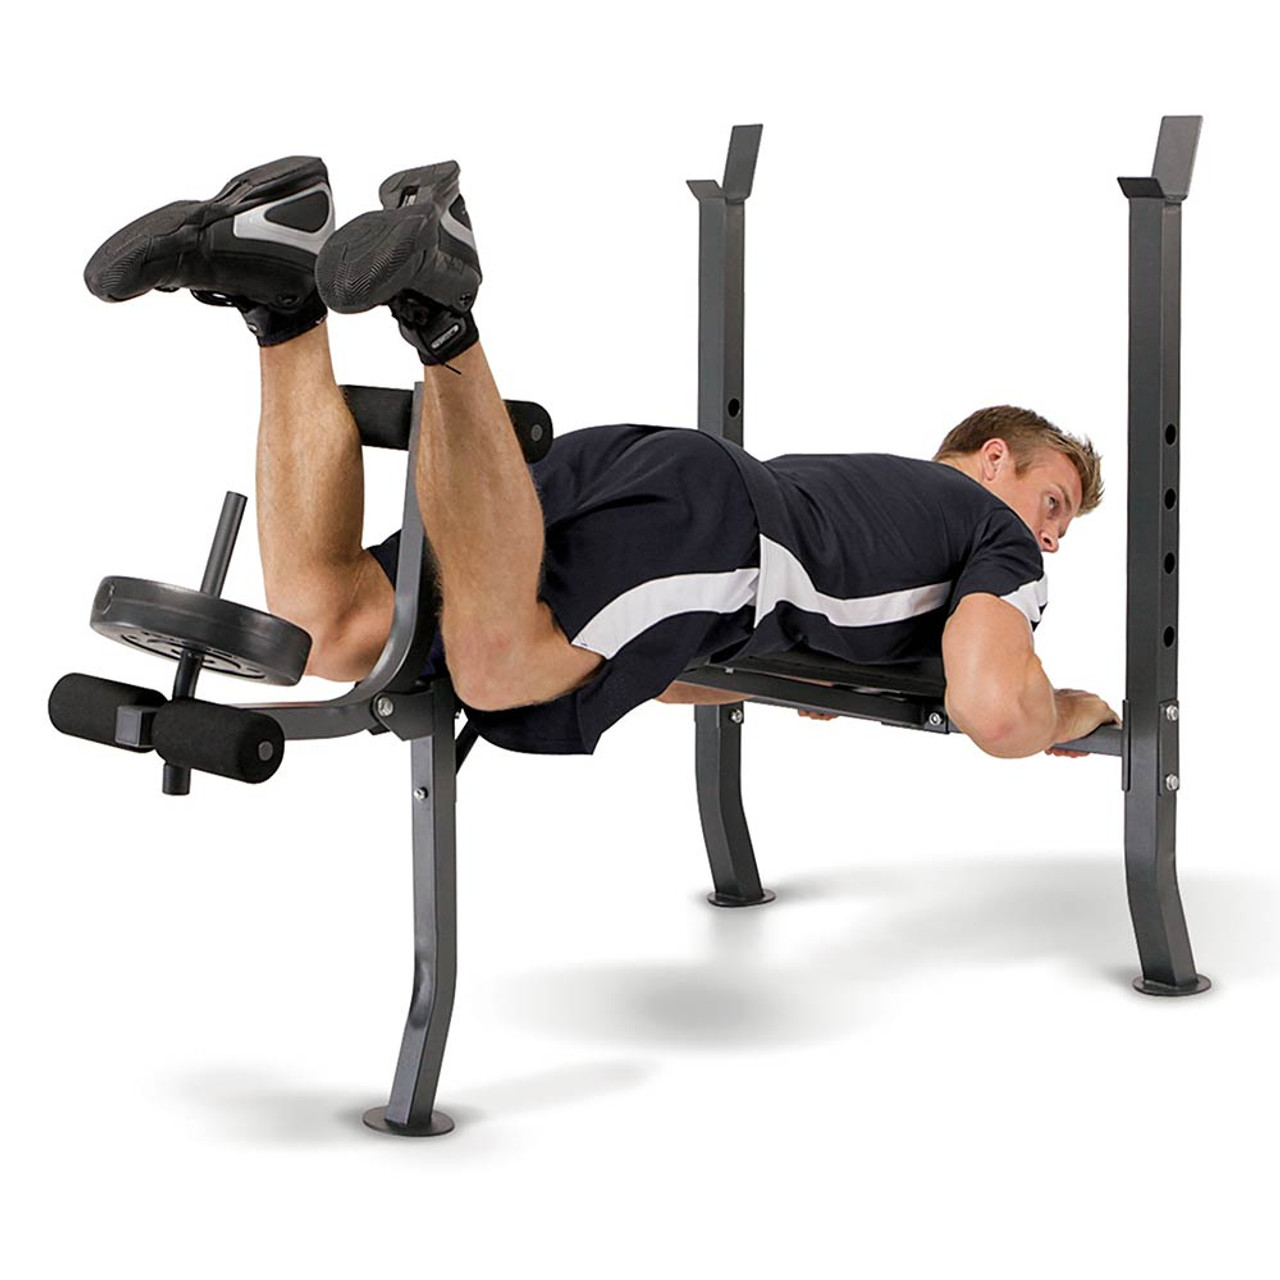 The Marcy Weight Bench 80lb Weight Set MD-2080 in use - leg curls